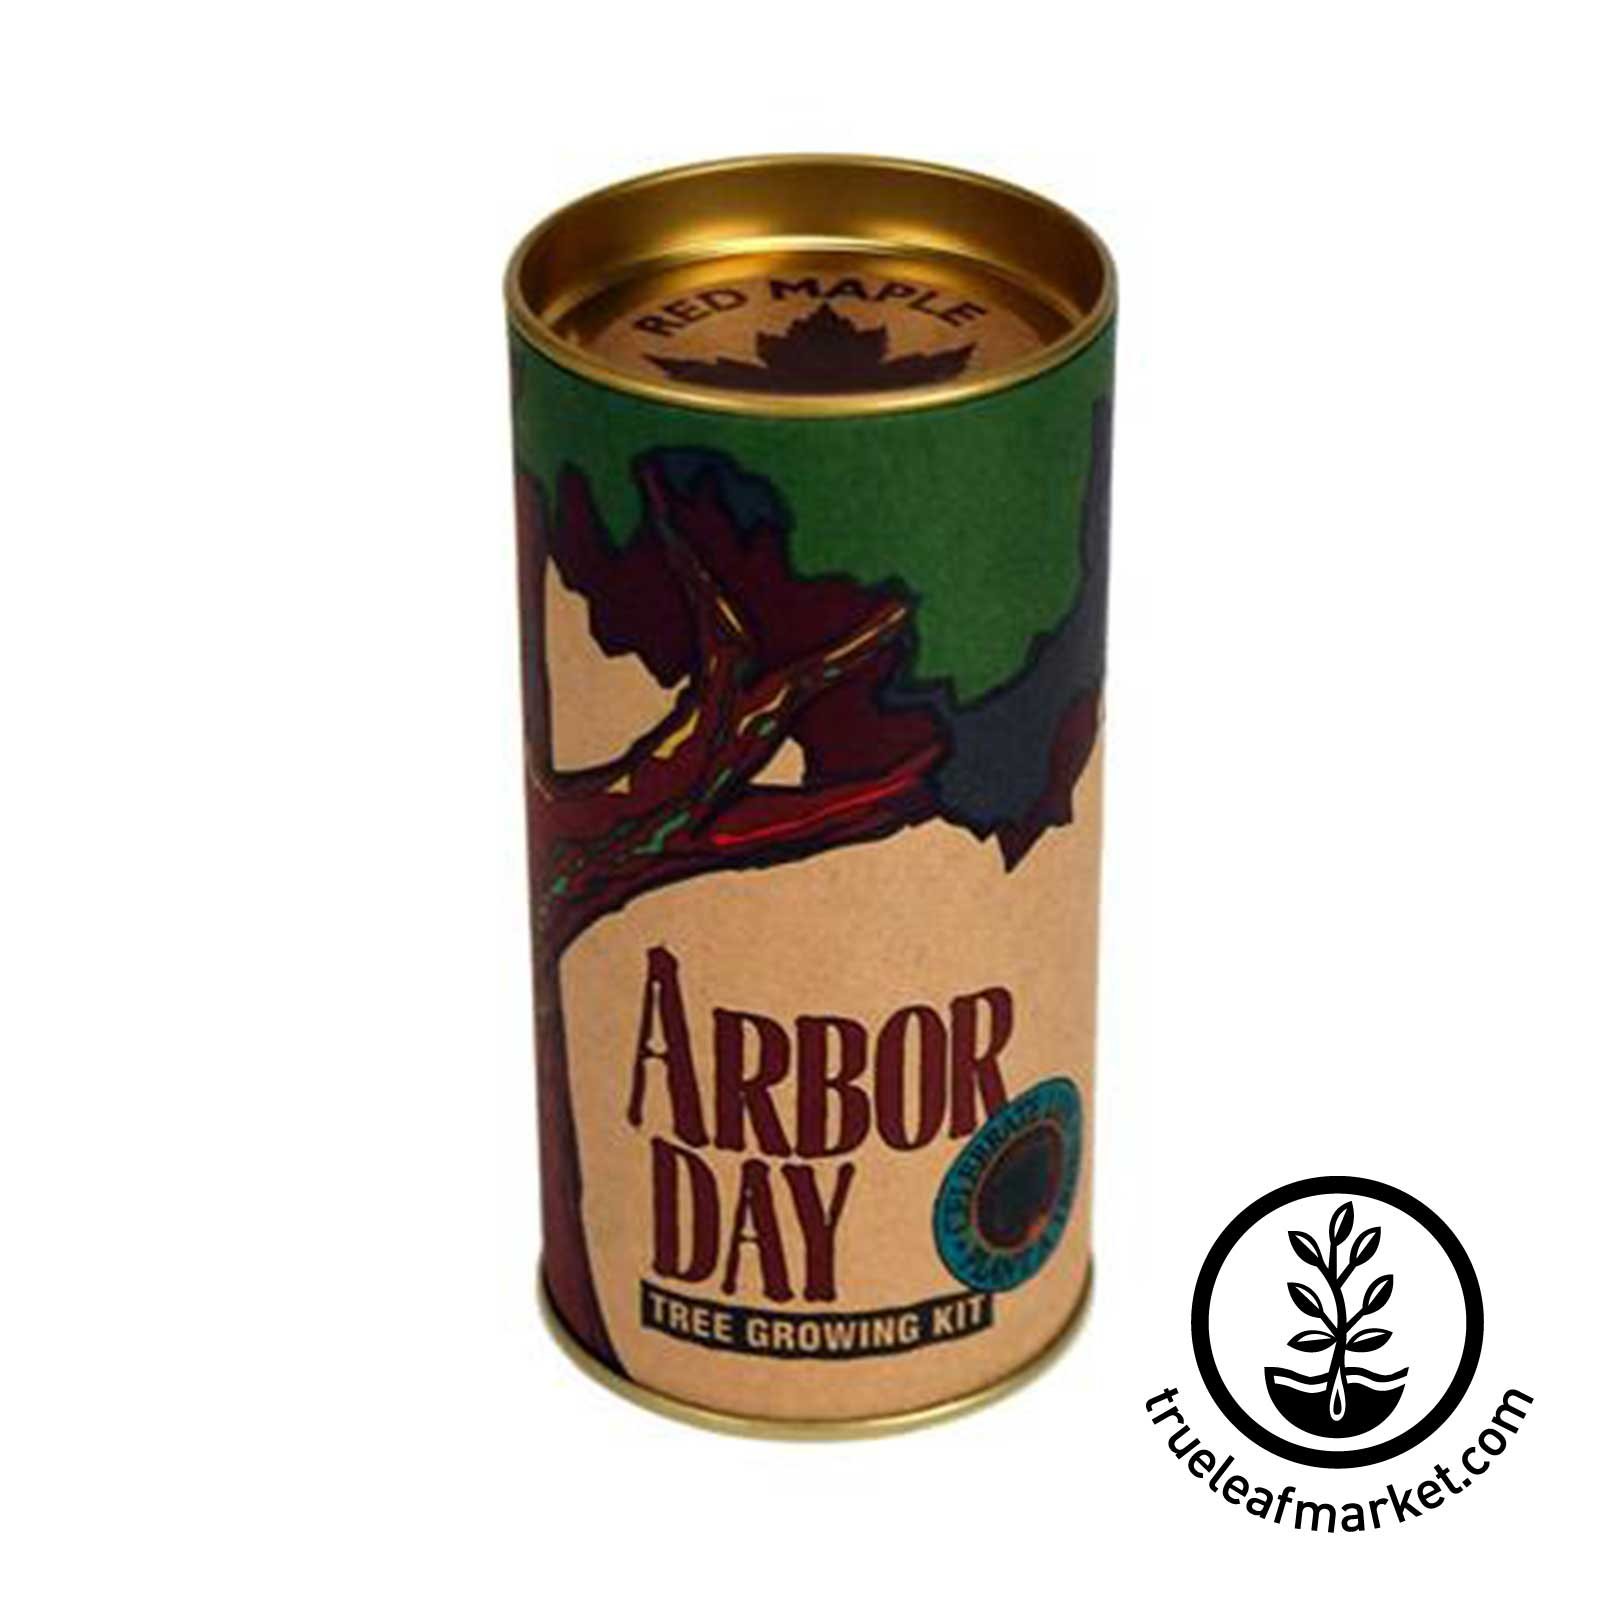 Arbor Day Red Maple Tree Kit by Jonsteen